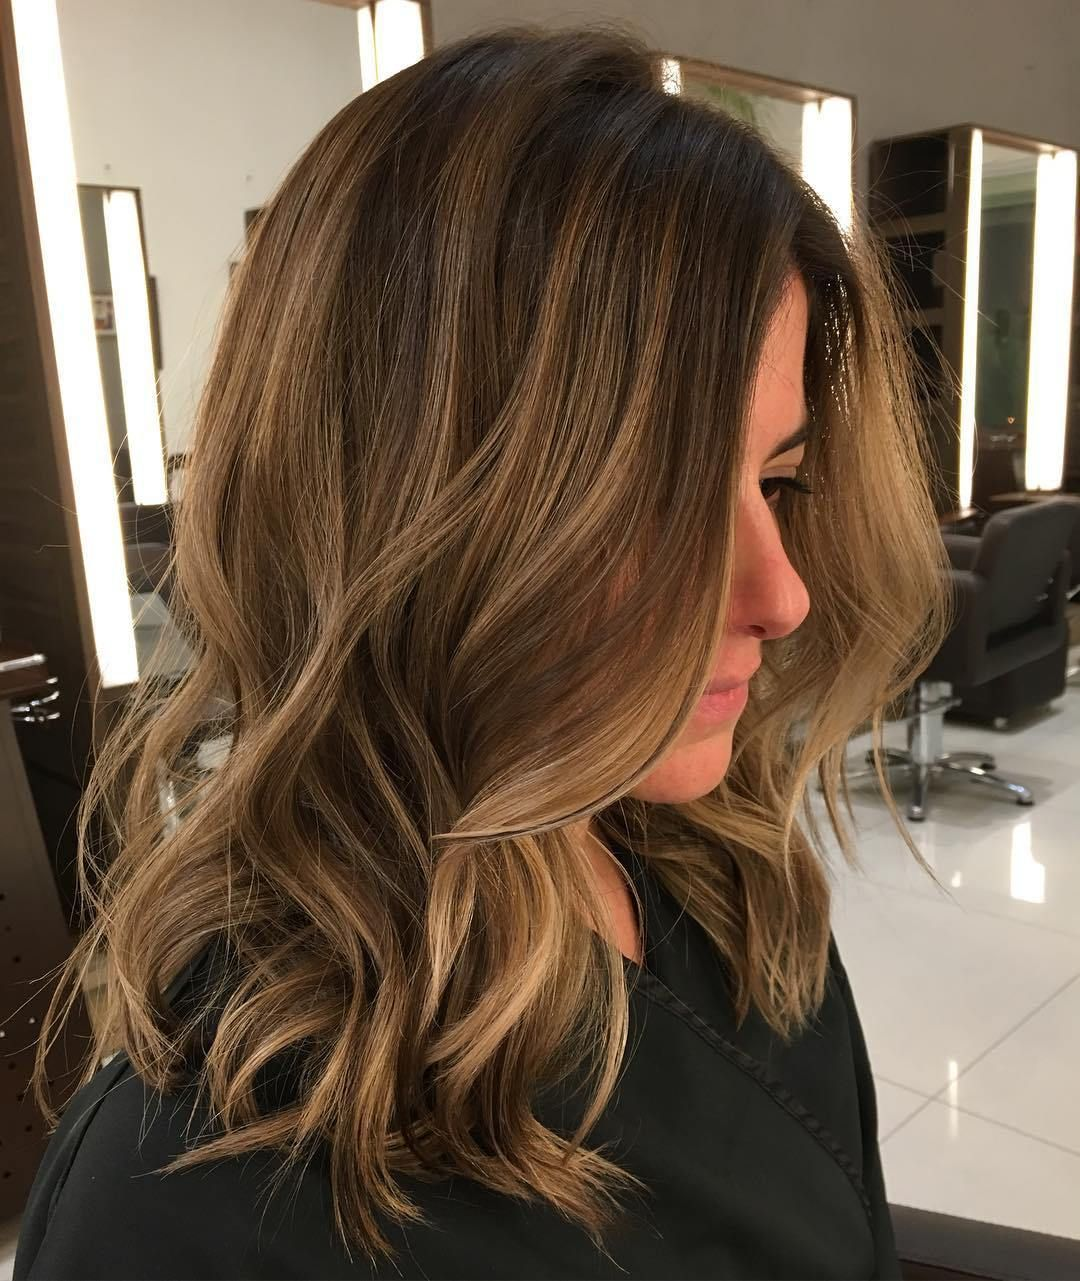 45 ideas for light brown hair with highlights and lowlights 35 light brown hair color ideas light brown hair with highlights and lowlights pmusecretfo Images